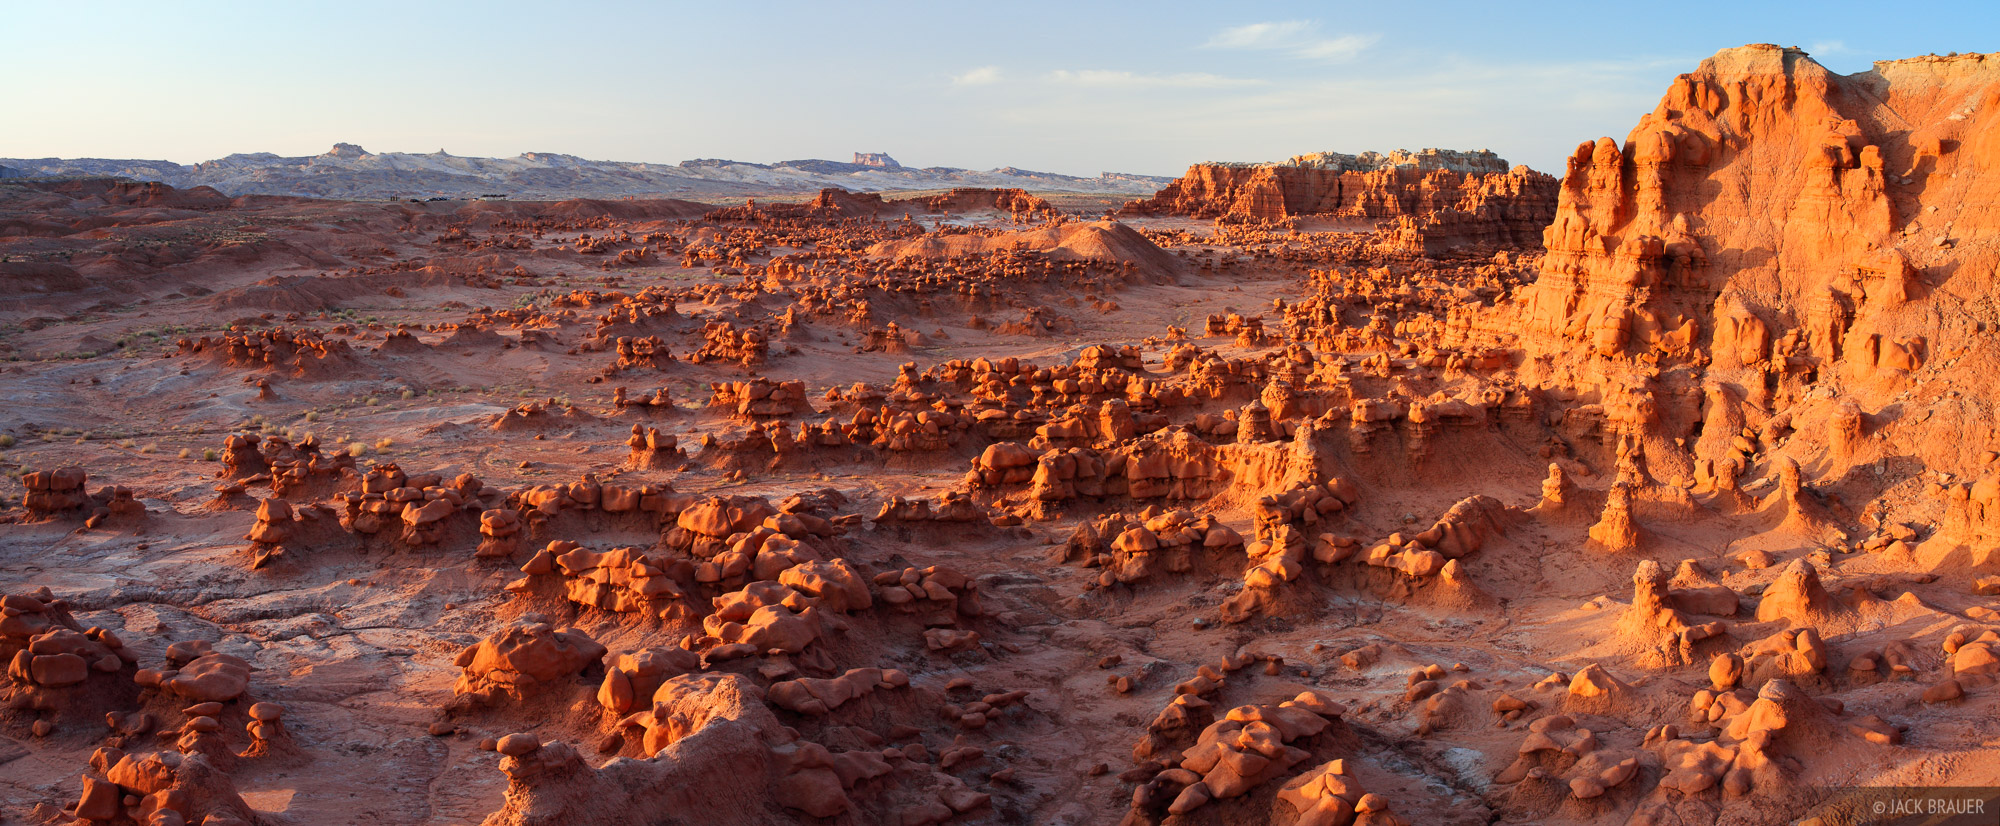 Goblin Valley, San Rafael Swell, Utah, sunset, photo